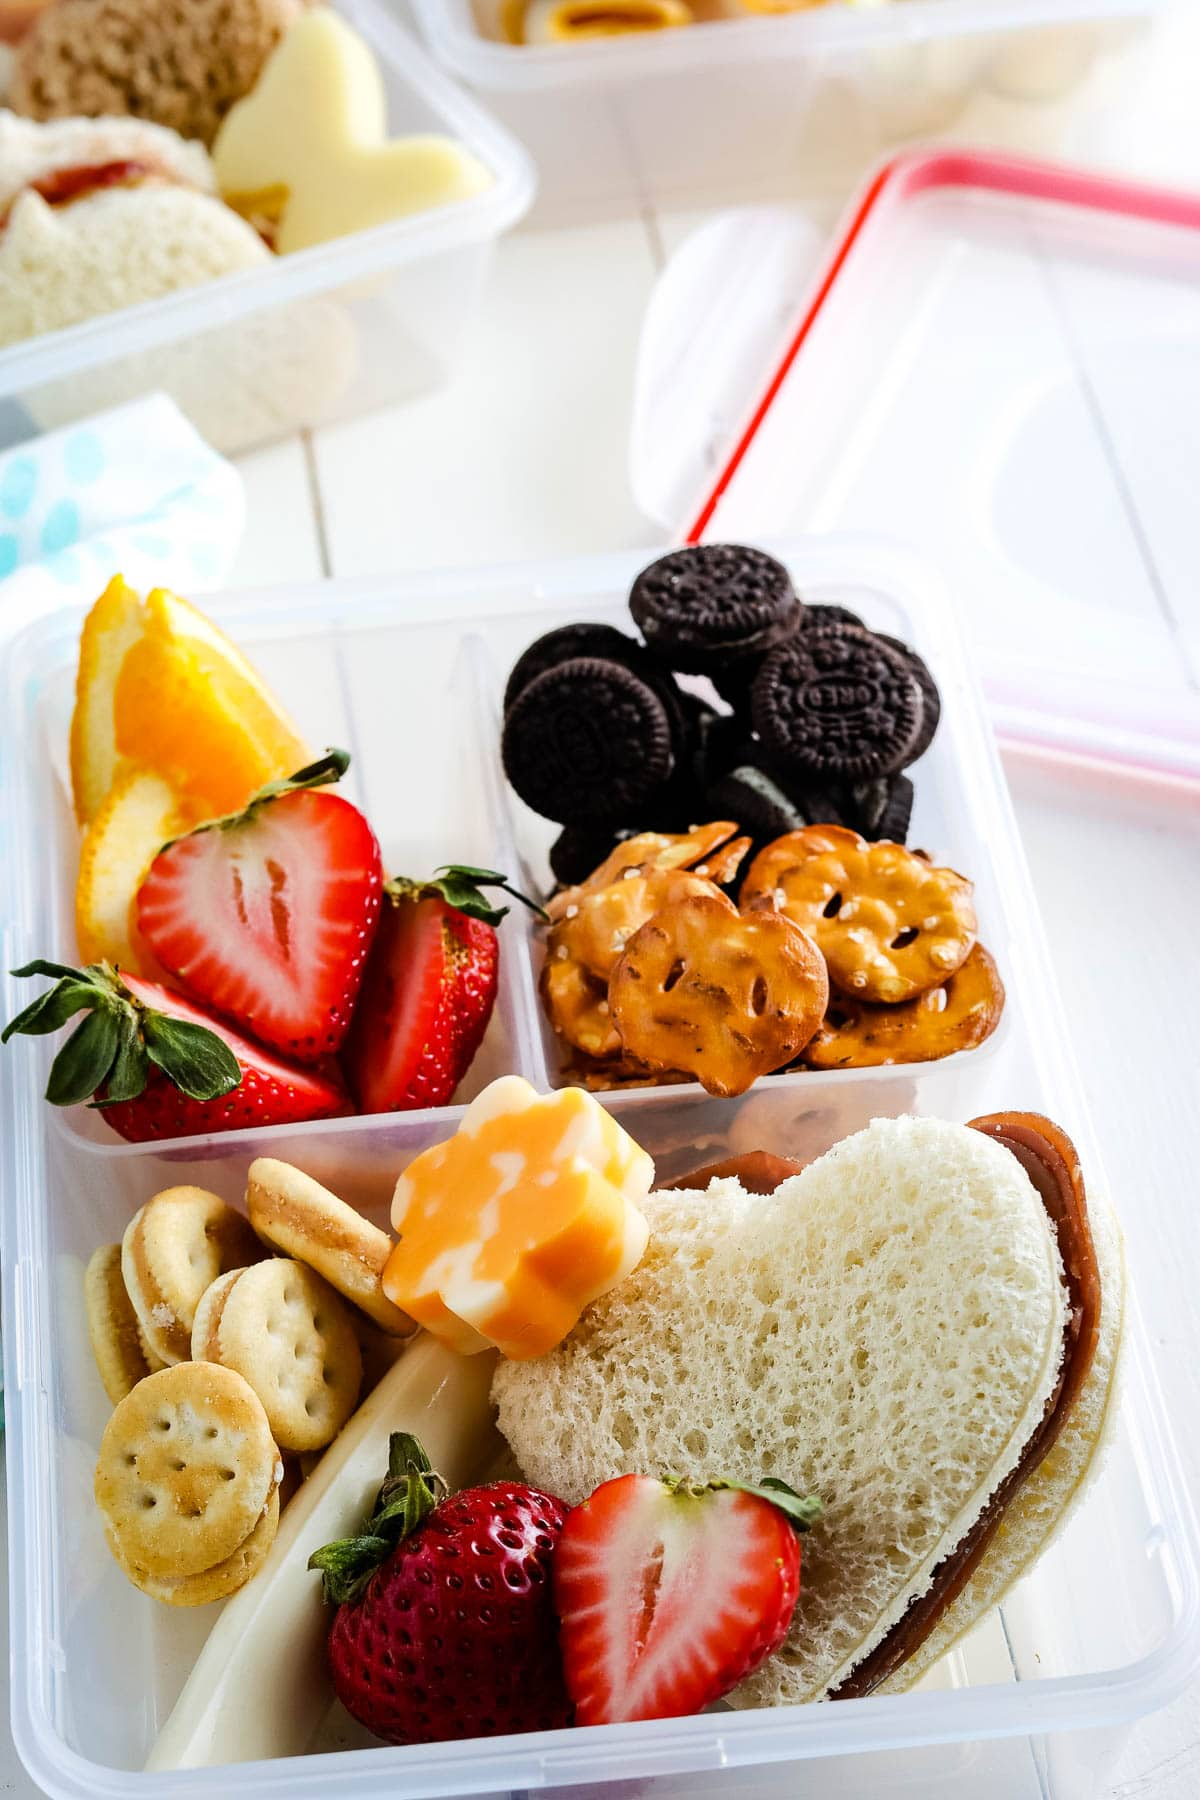 Lunch box with sandwich, fruit, pretzels, cookies and more